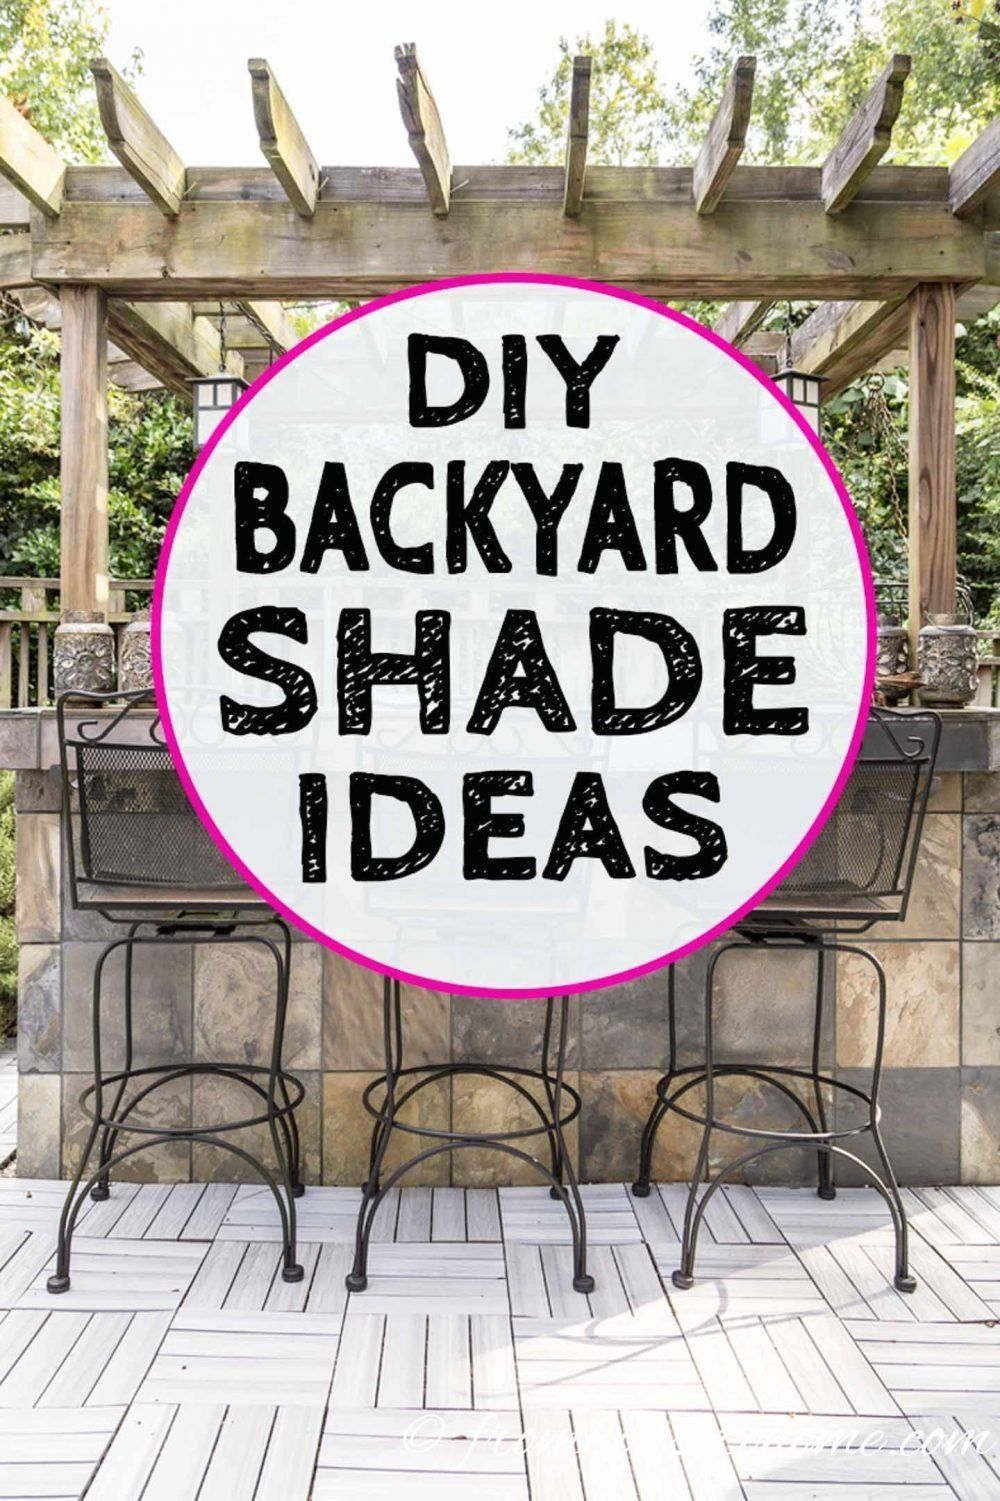 Backyard Shade Ideas 10 Shade Solutions For A Cooler Deck Or Patio Gardening From House To Home 1000 Outdoor Shade Diy Patio Cover Backyard Shade